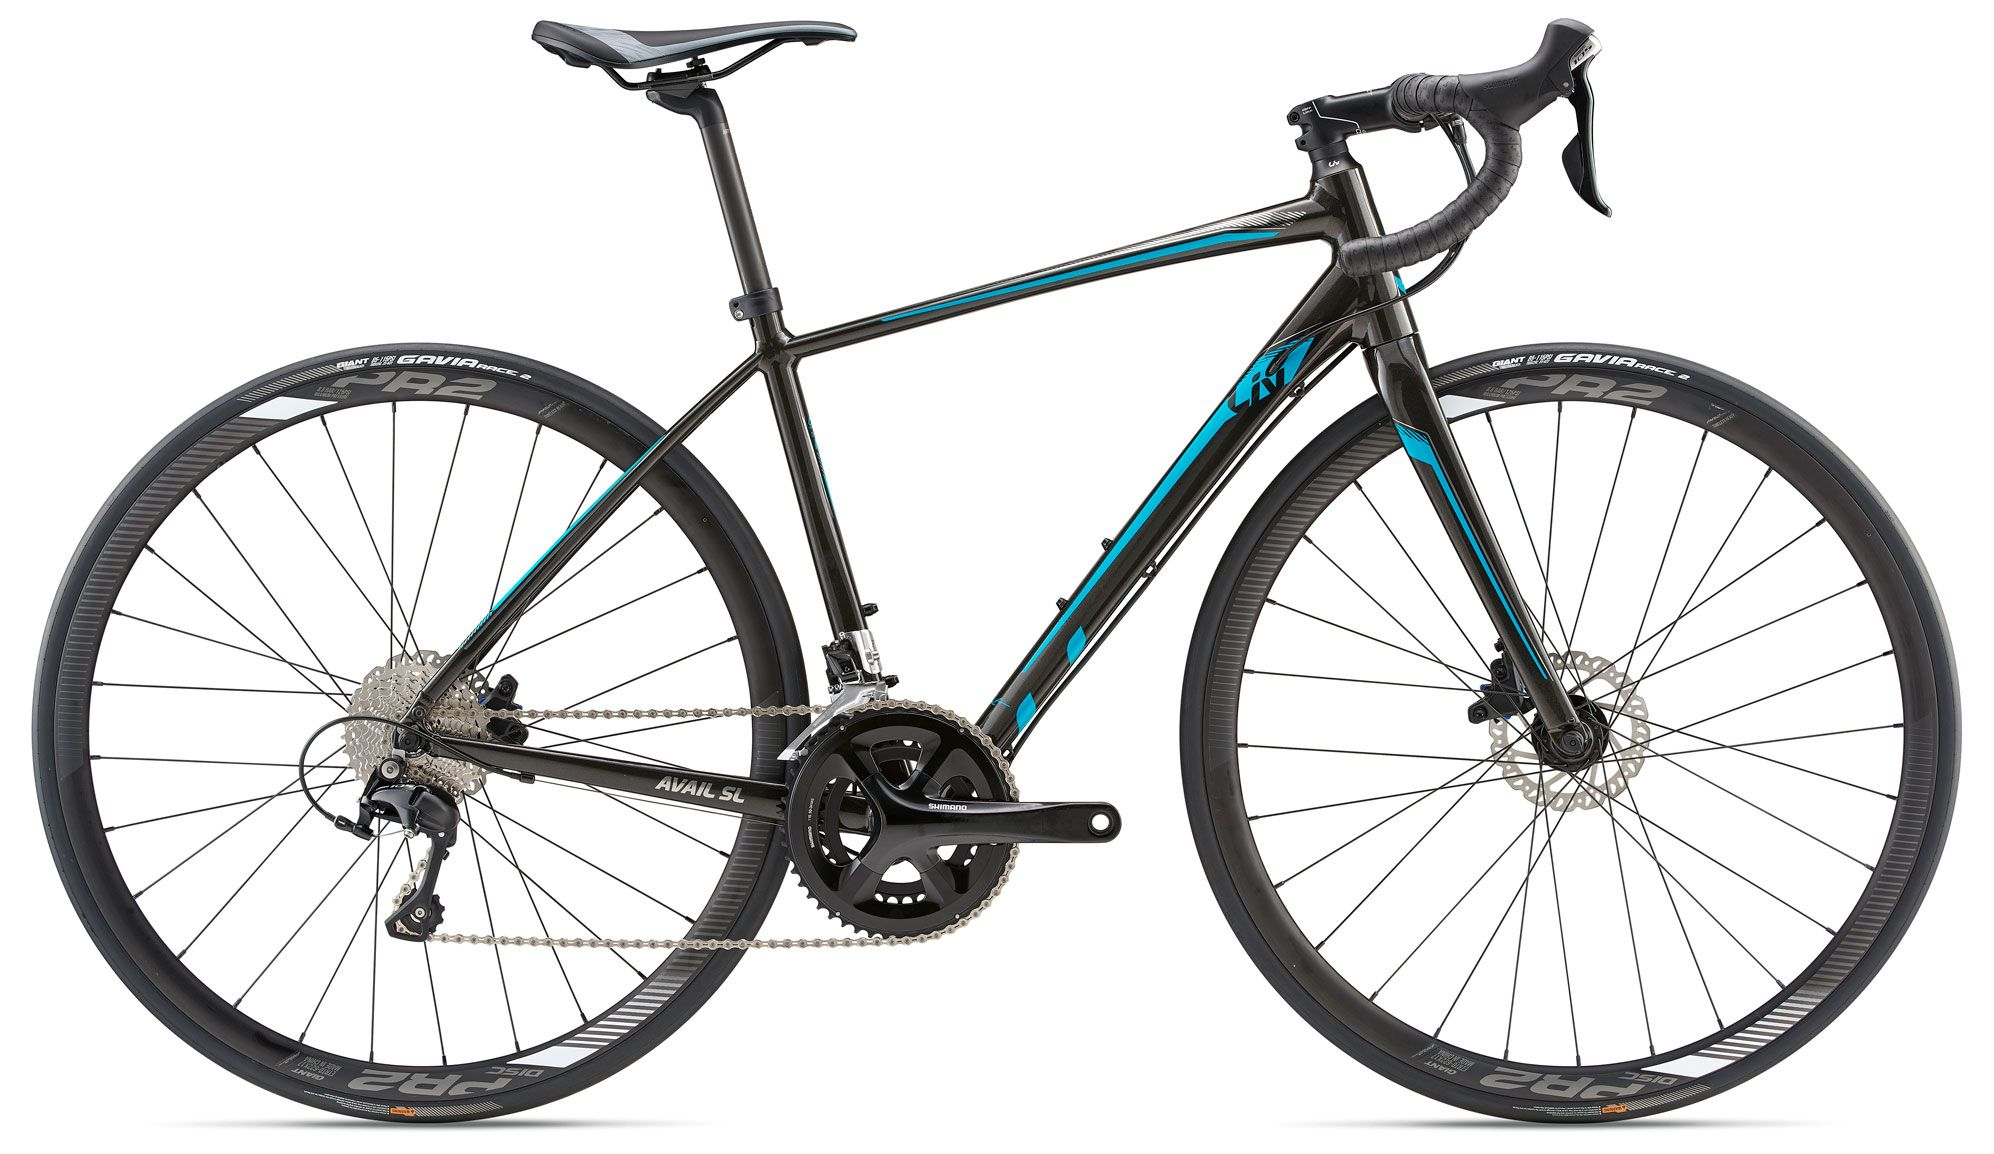 Велосипед Giant Avail SL 1 Disc 2018 велосипед giant tcr advanced sl 2 2017